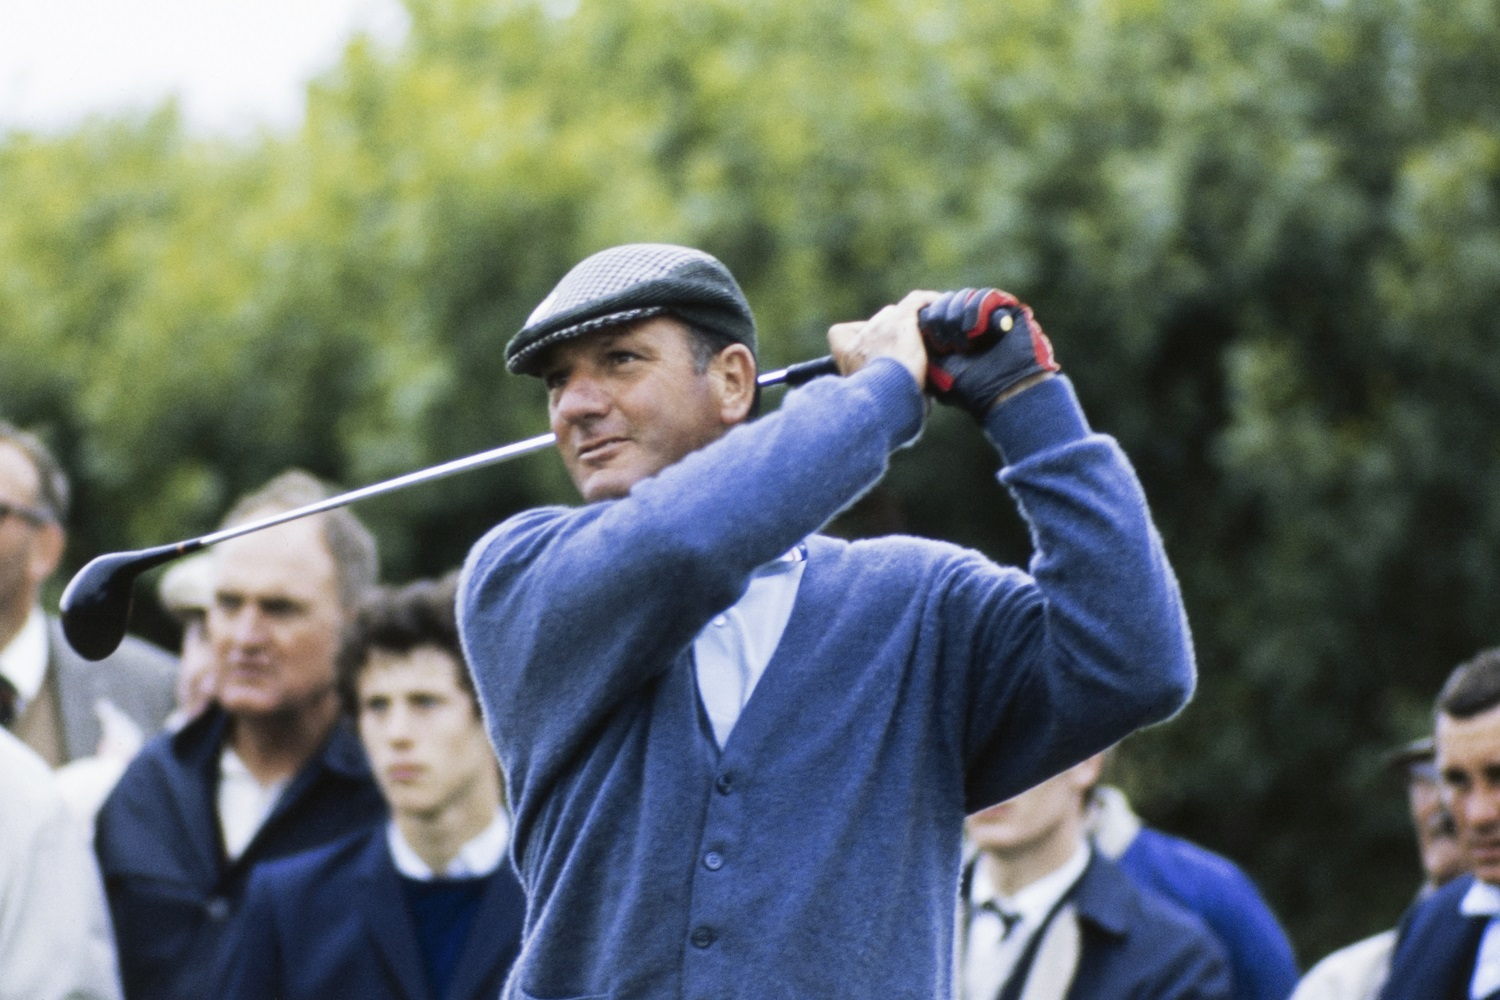 Roberto de Vicenzo at the 1969 Open Championship at Royal Lytham & St Annes. | Getty Images